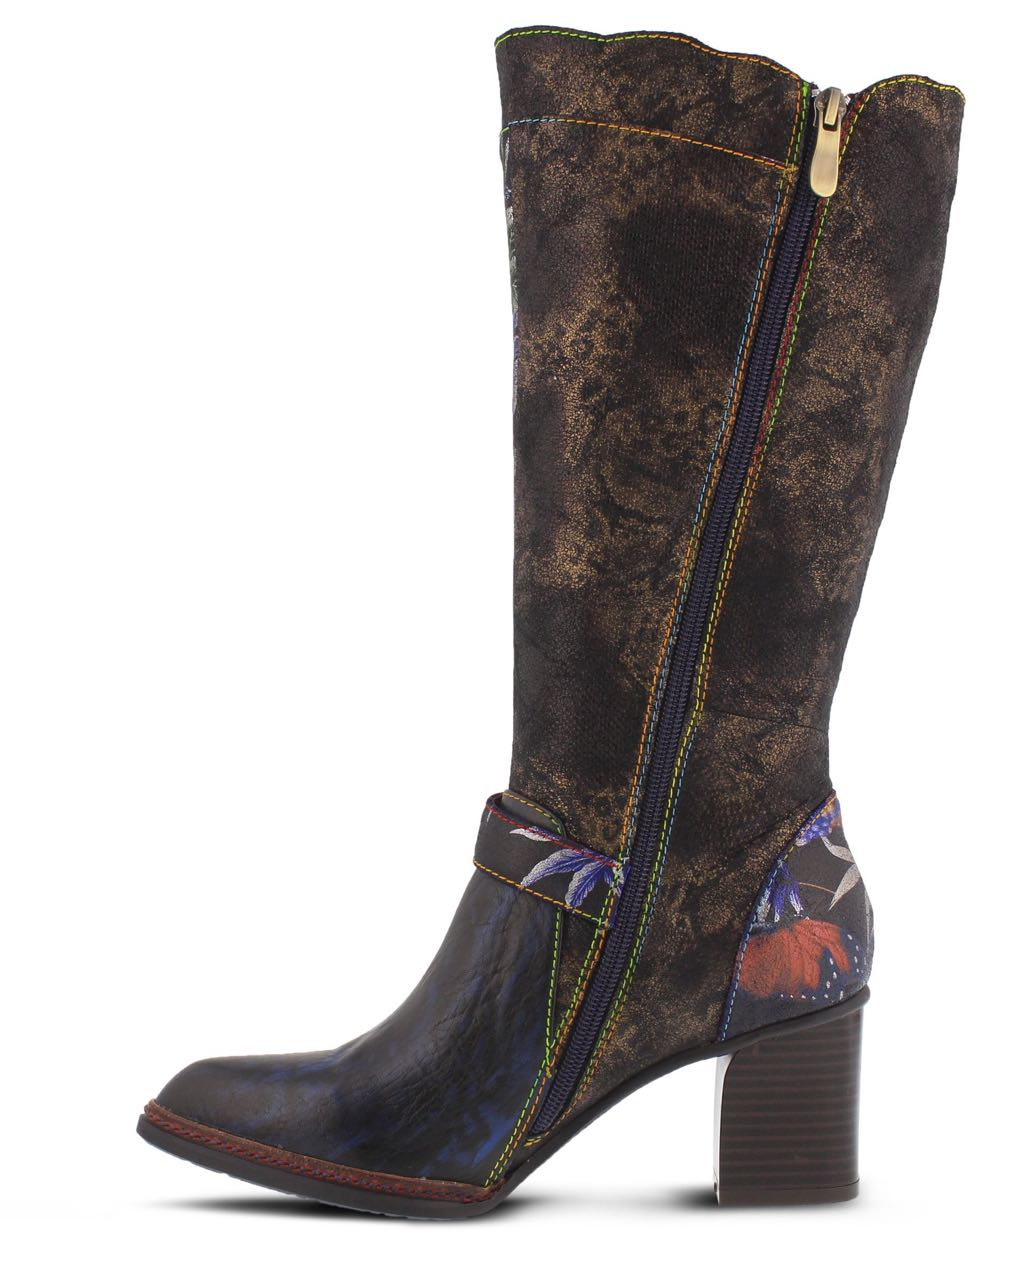 L Artiste By Spring Step Boots Savannah Canada Buy Online